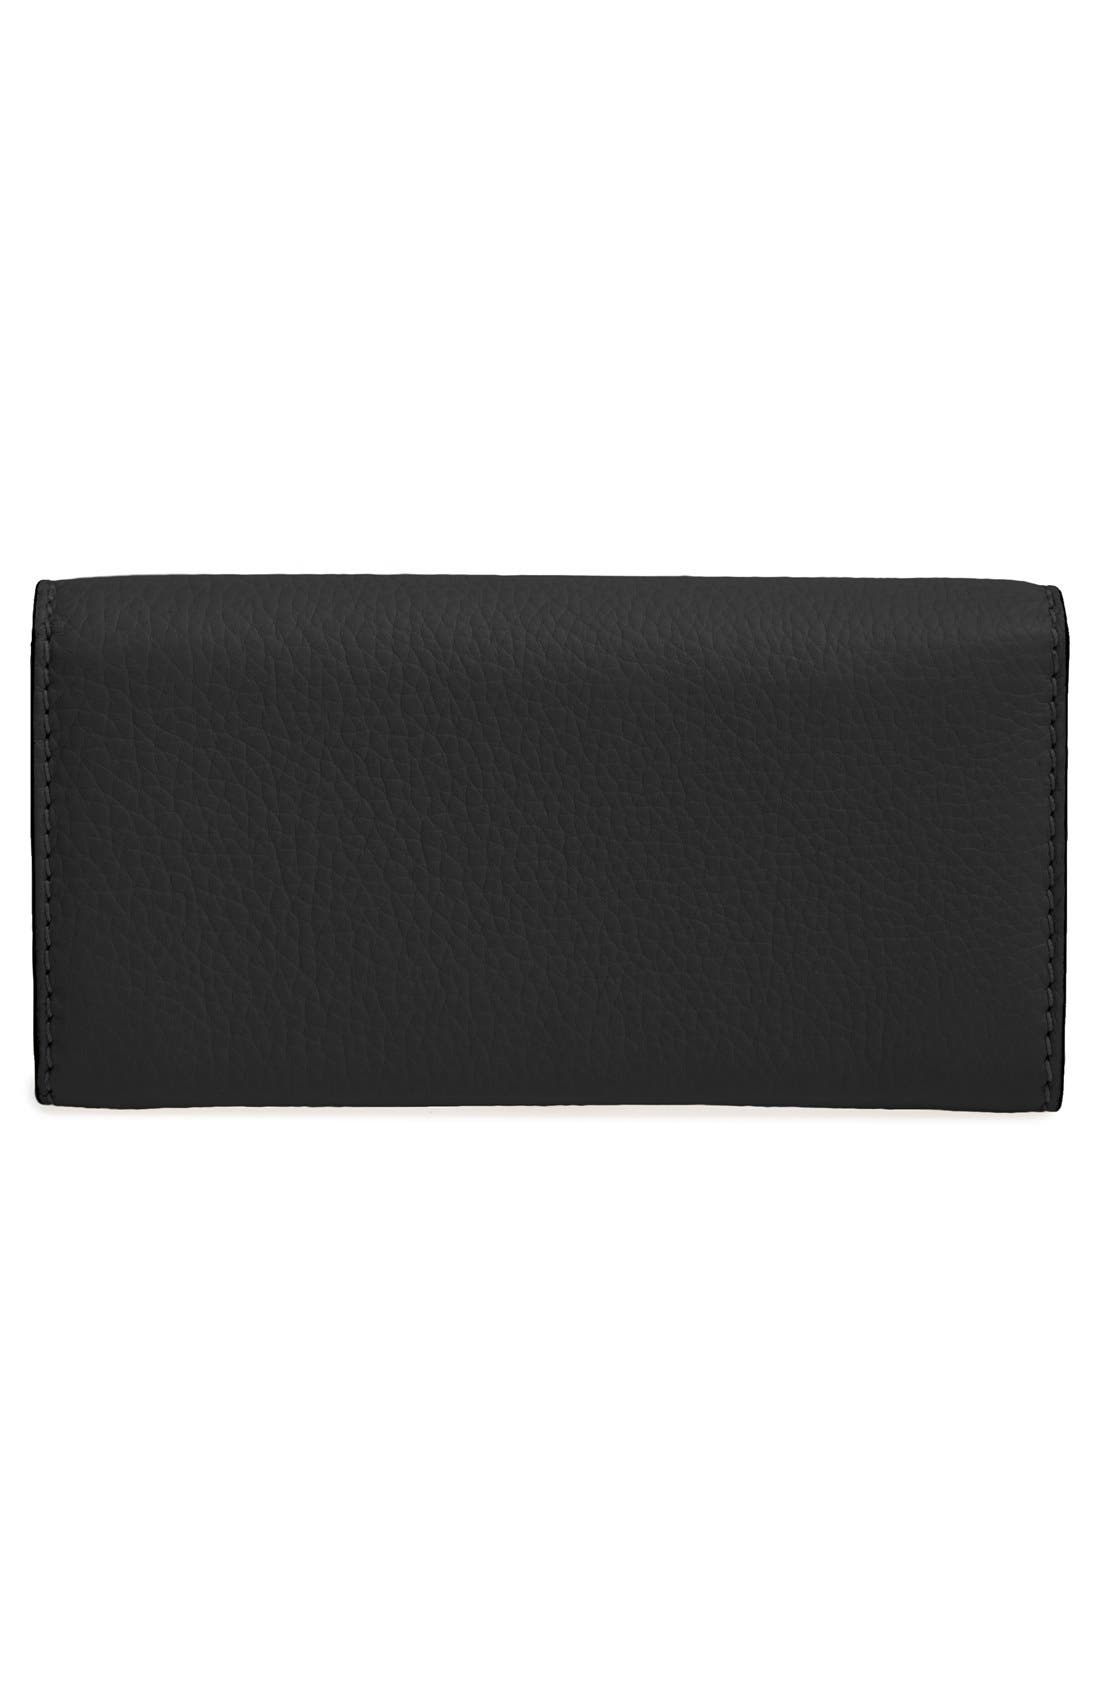 Alternate Image 3  - Chloé 'Marcie - Long' Leather Flap Wallet